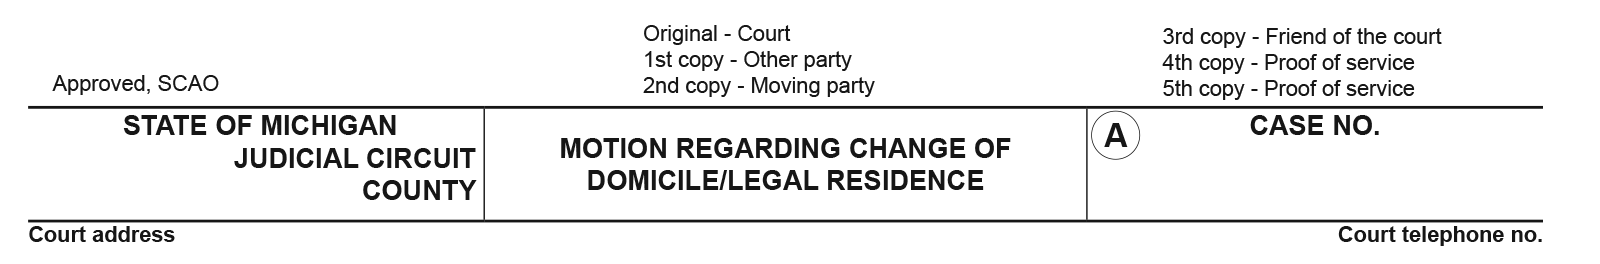 Legal form used to change your legal domicile or residence in the State of Michigan